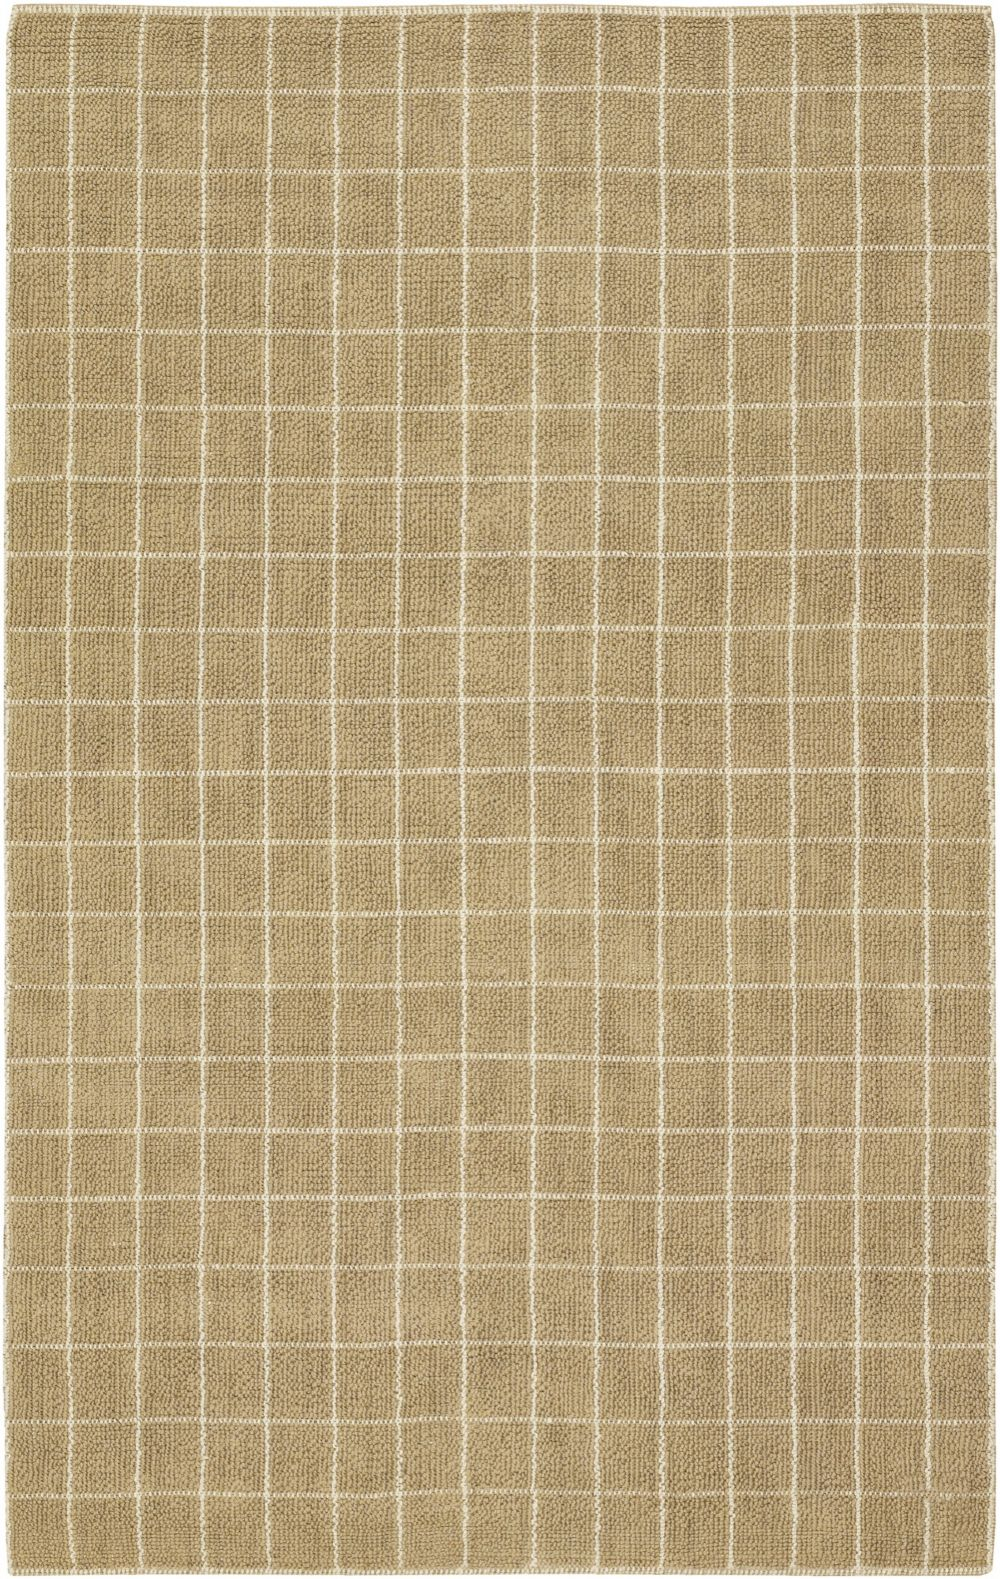 surya country jutes natural fiber area rug collection